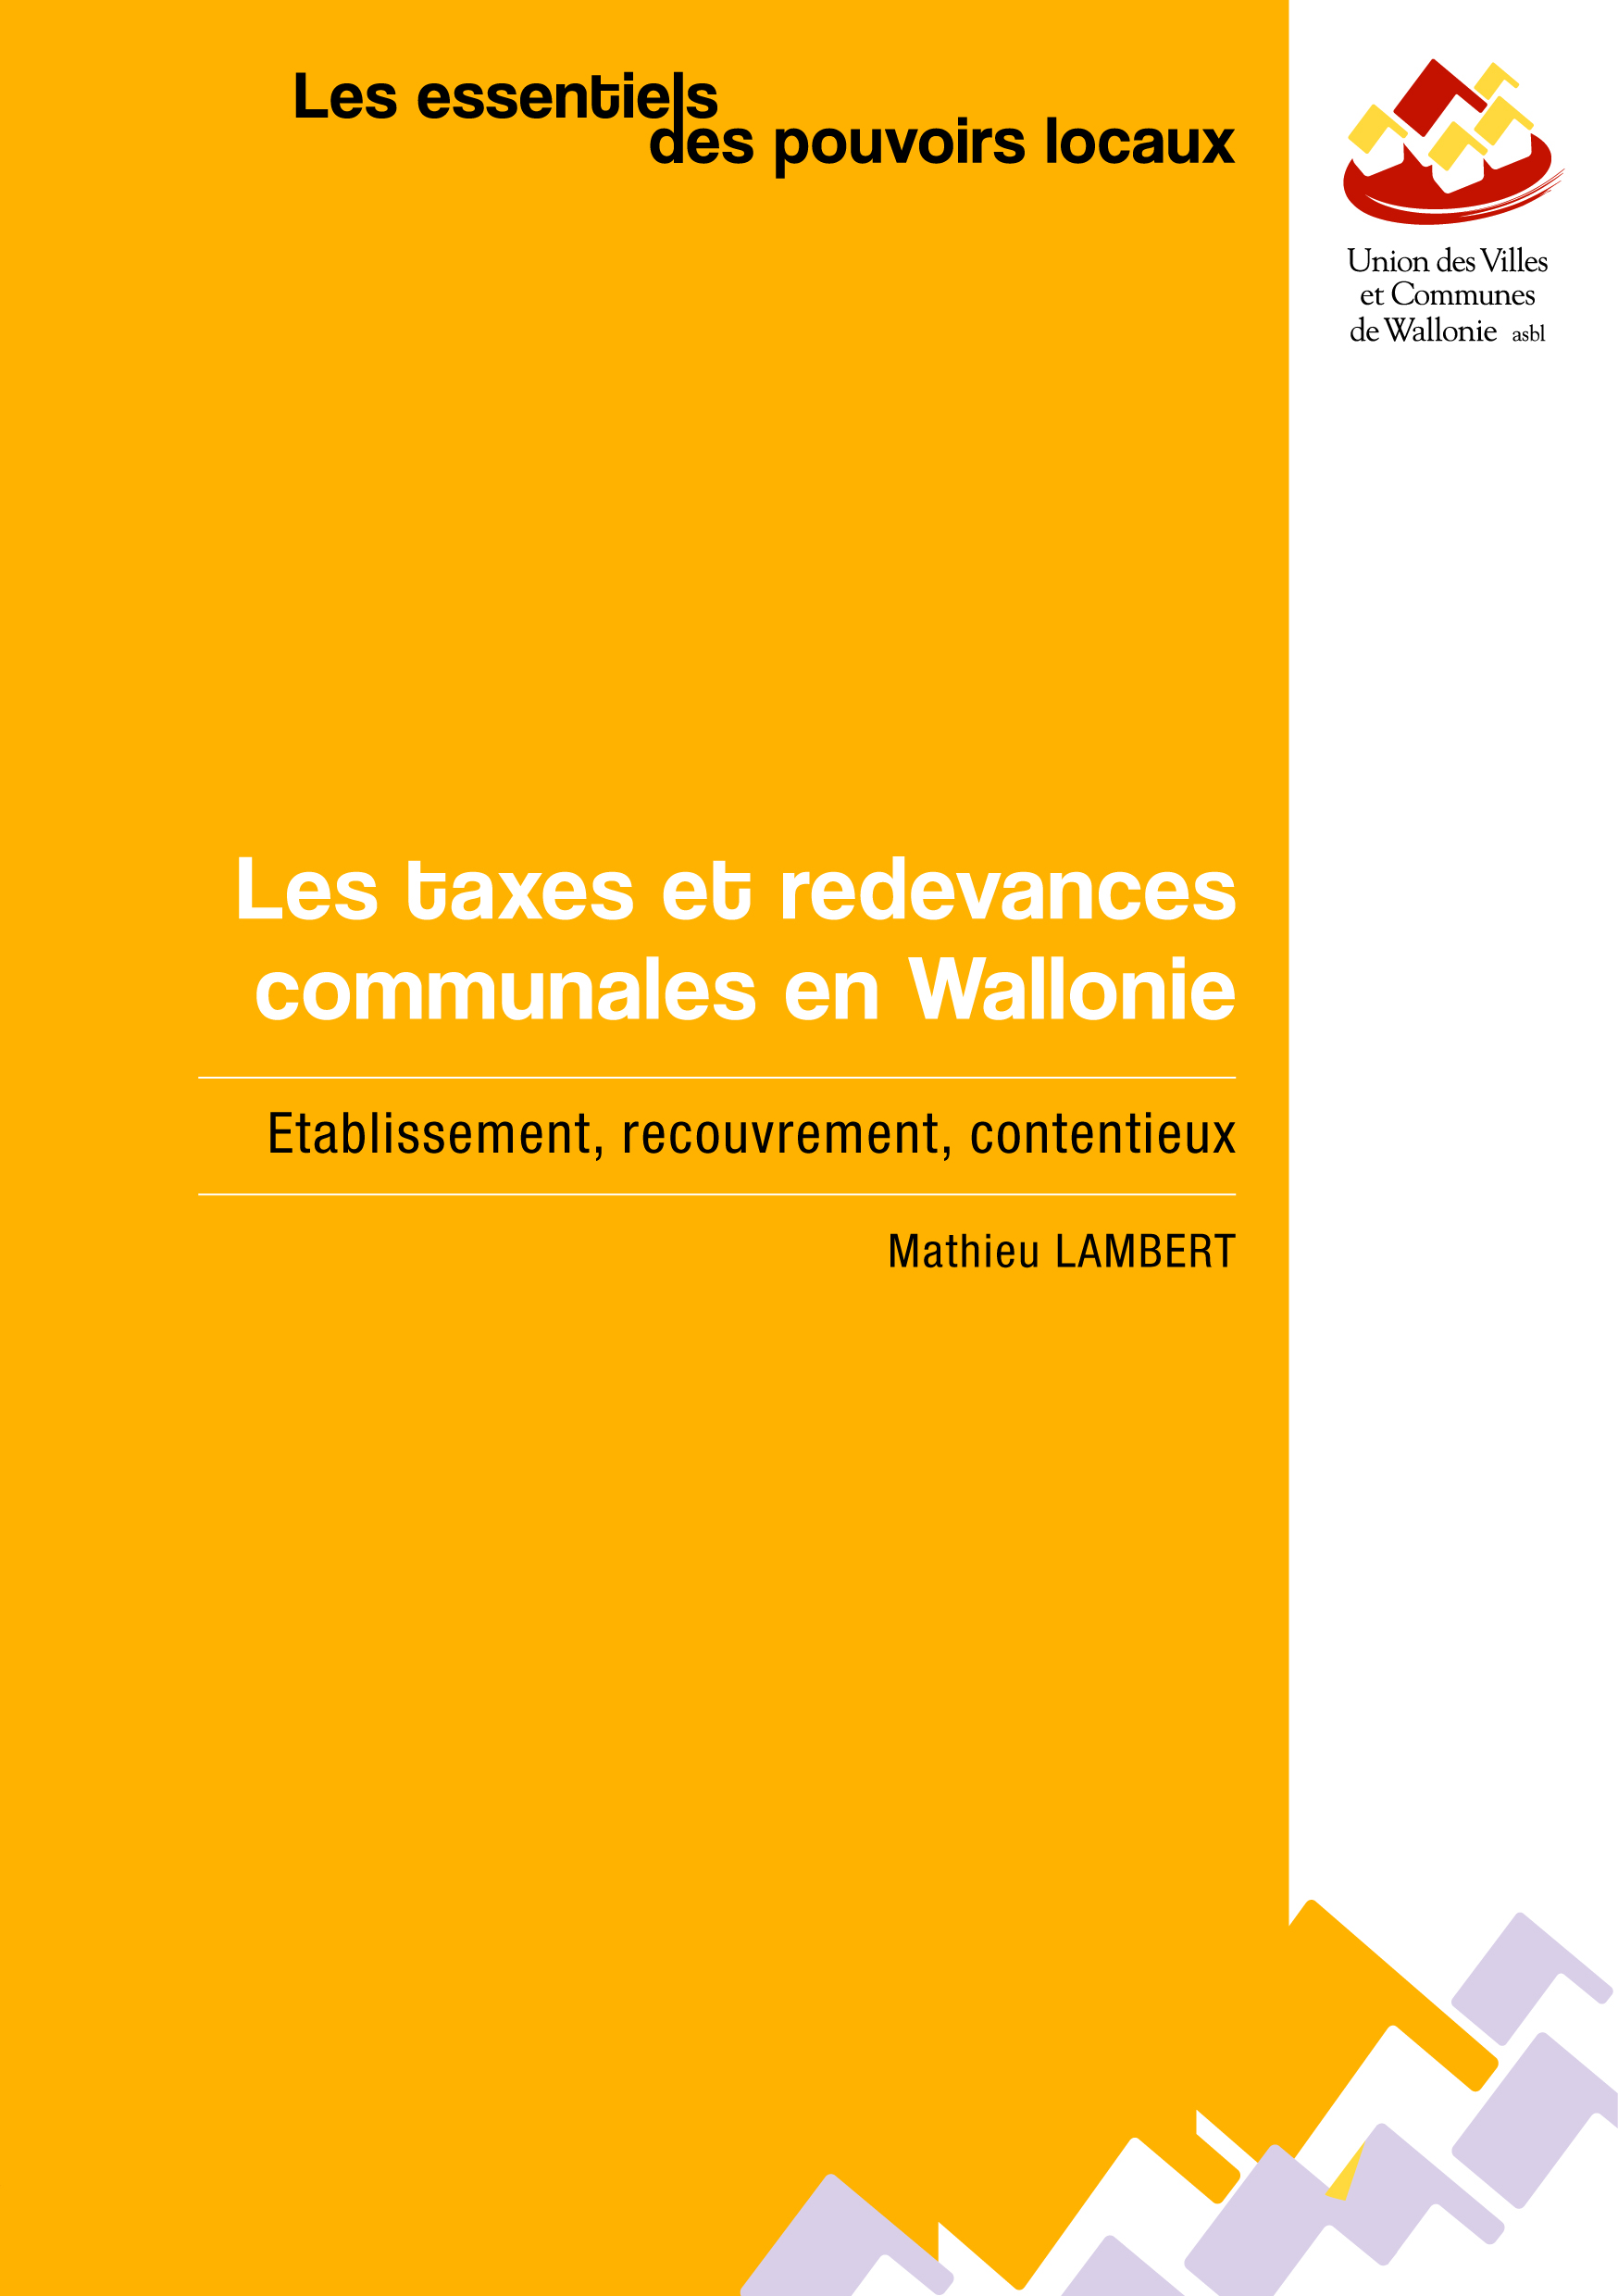 Les taxes et redevances communales en Wallonie